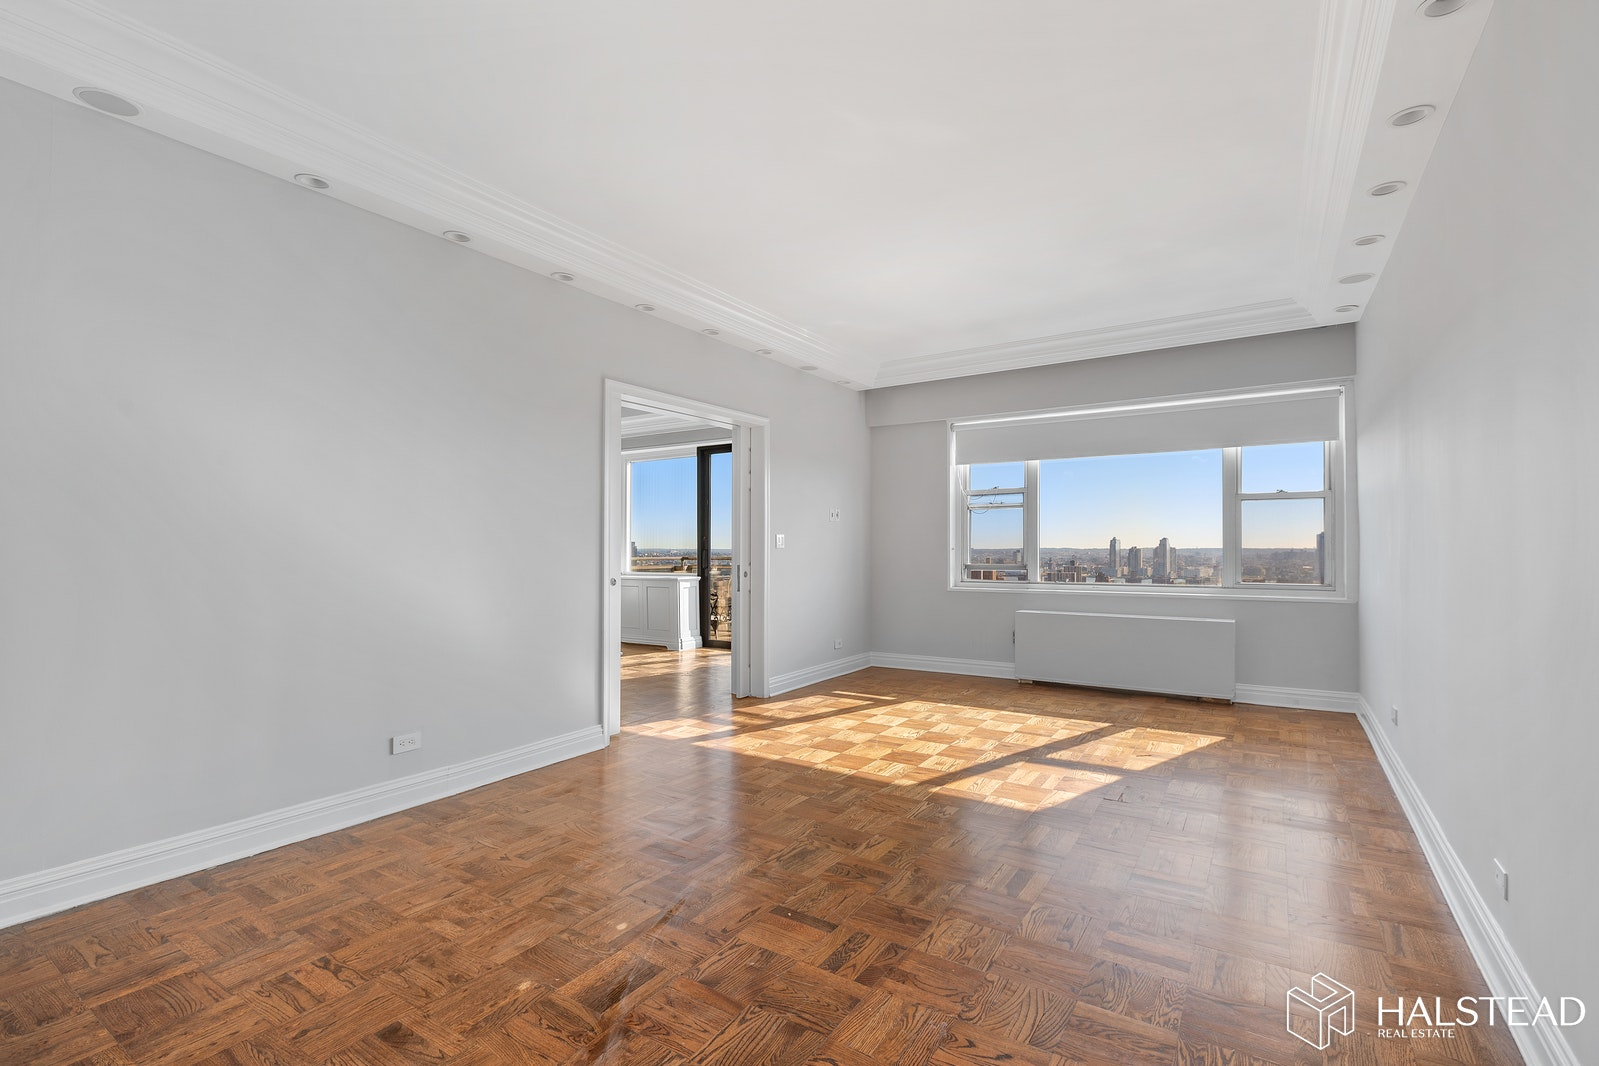 60 East 8th Street 34kl, Central Village, NYC, 10003, $5,000,000, Property For Sale, Halstead Real Estate, Photo 7